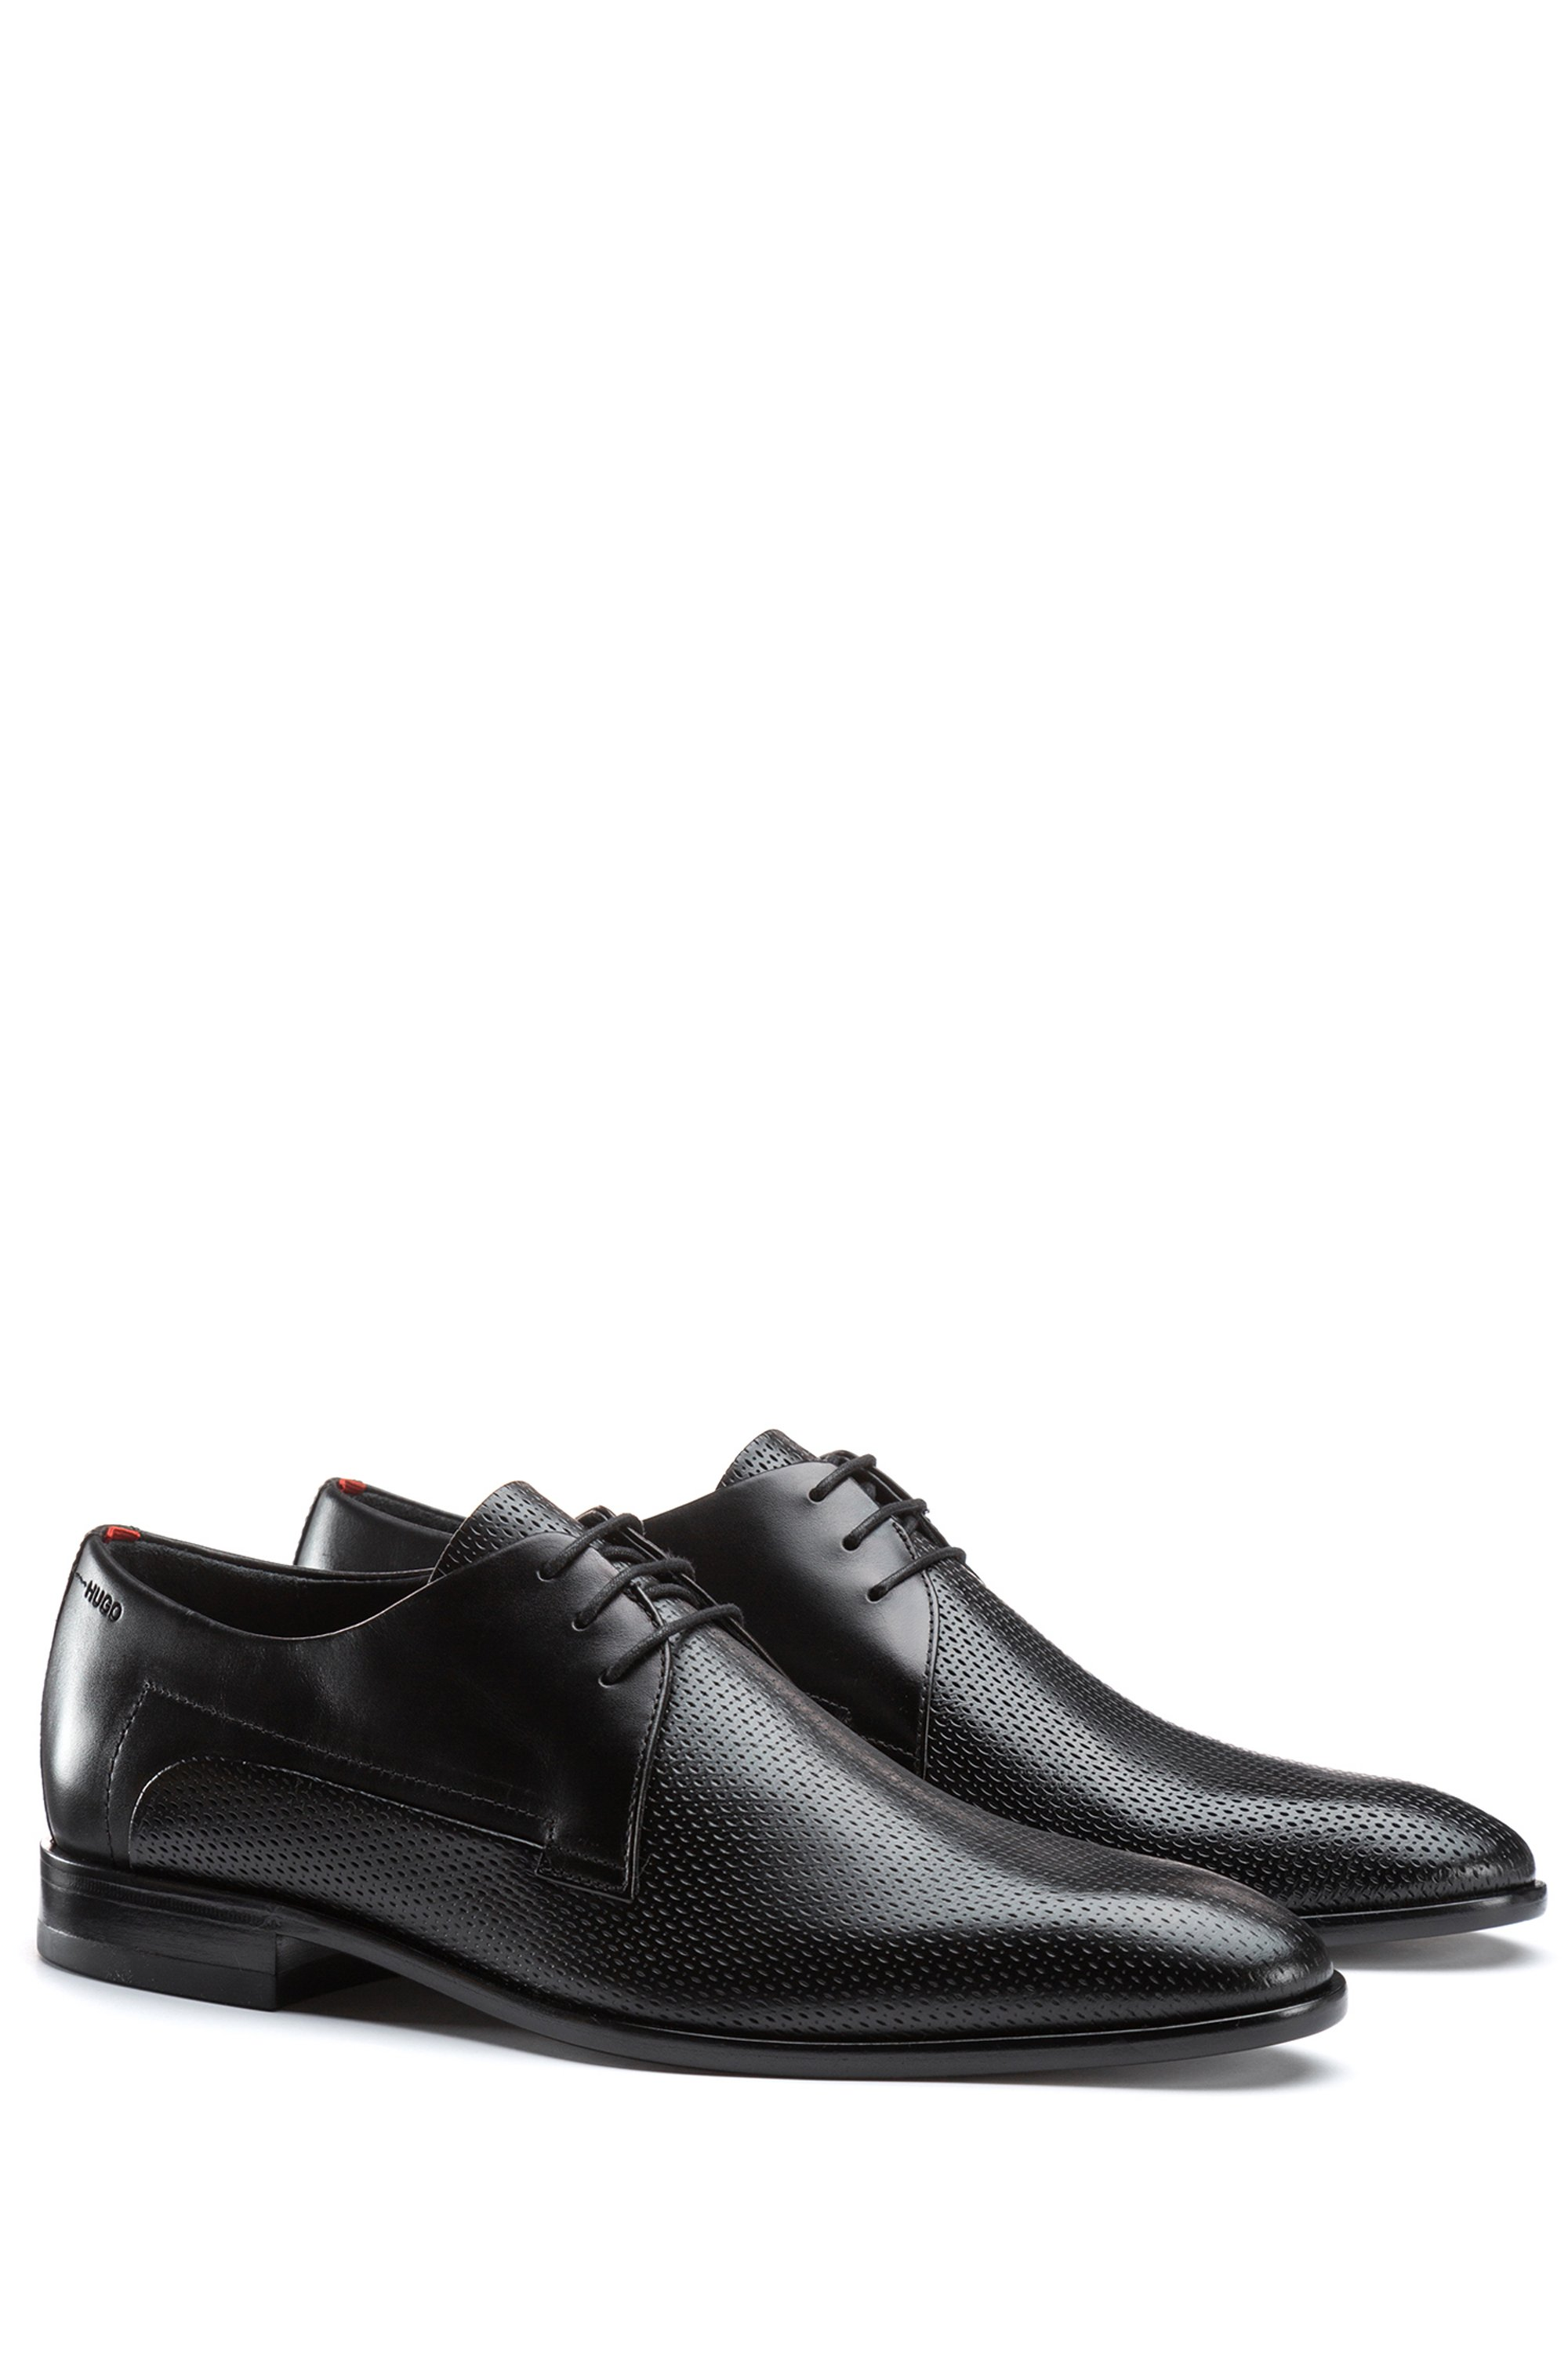 Leather Derby shoes with printed vamp